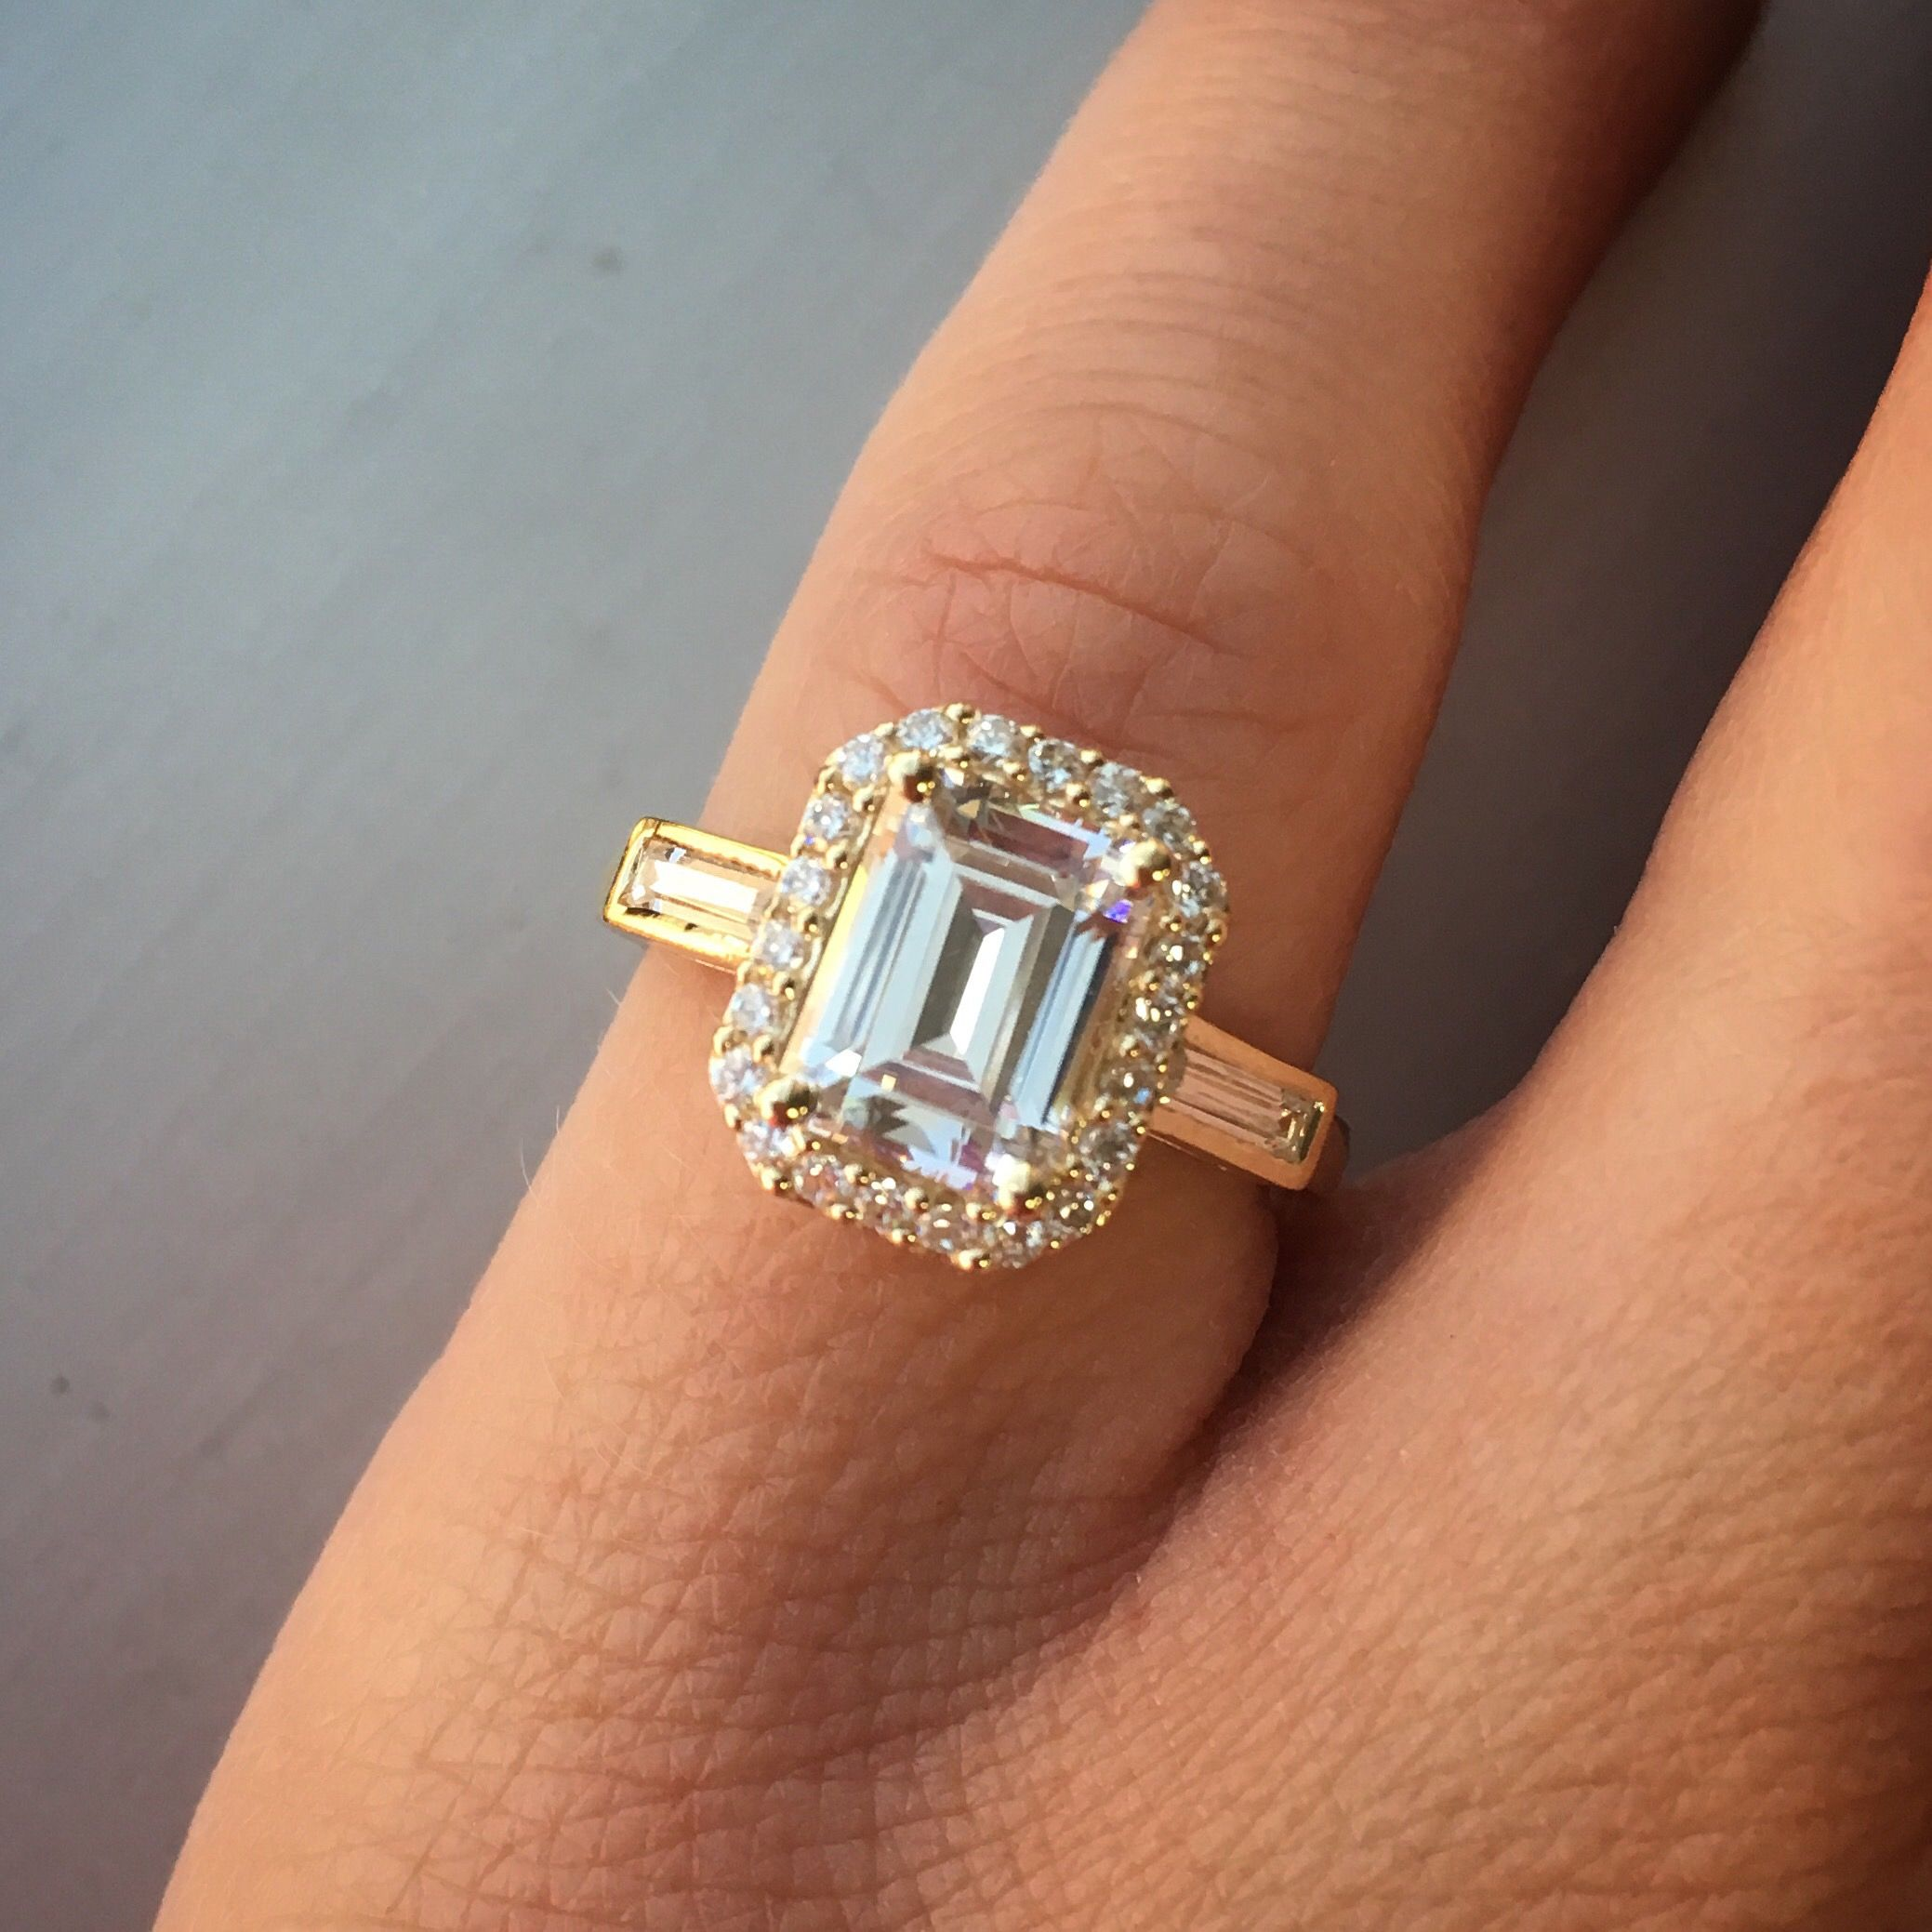 christies christie cut s jewels ring with rectangular rings online report gia diamond engagement nyr